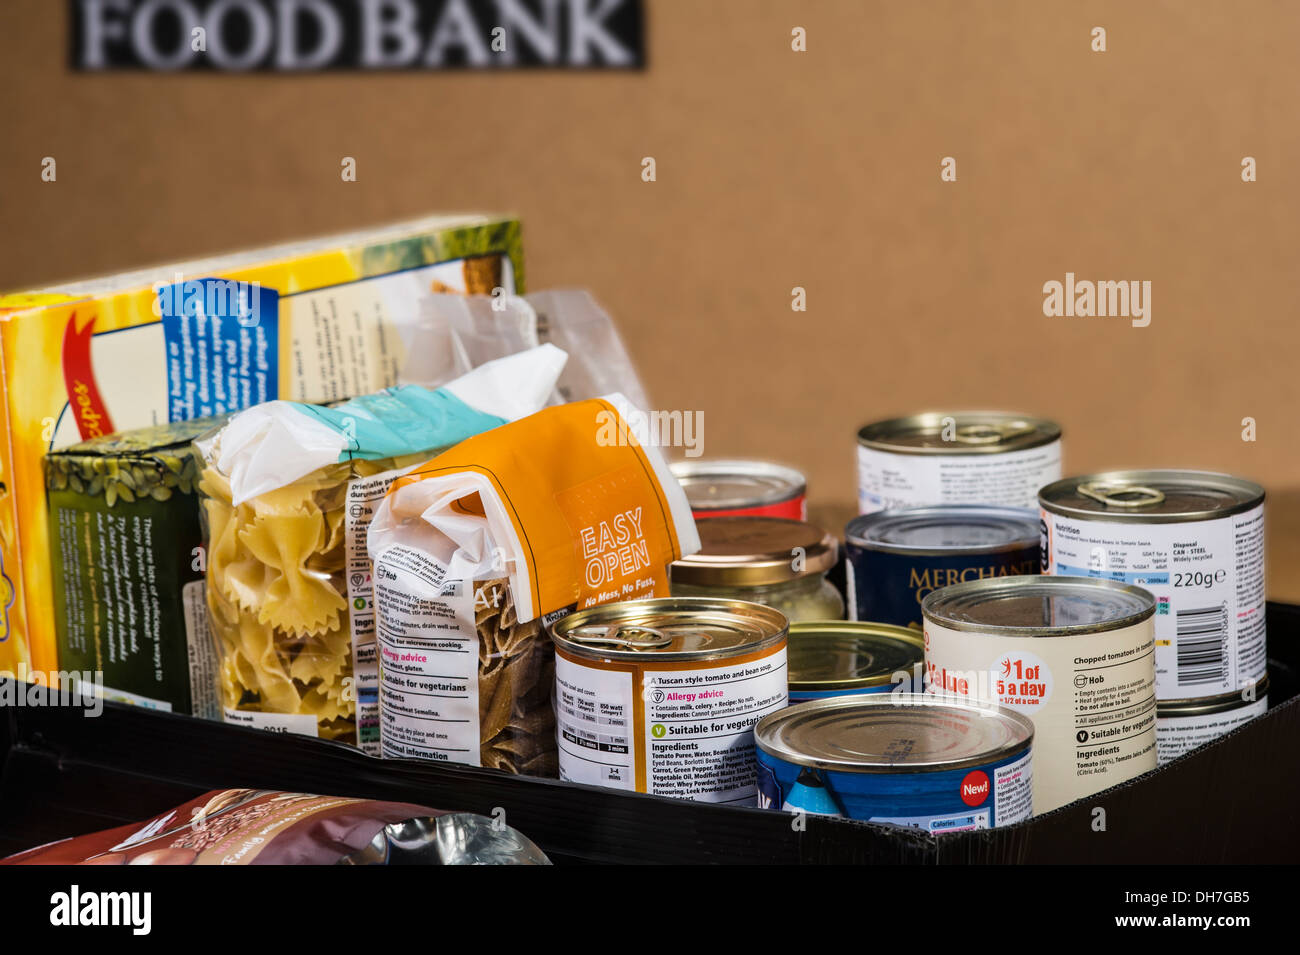 Box of essential food items ready to be handed out.Food bank charity donation. - Stock Image